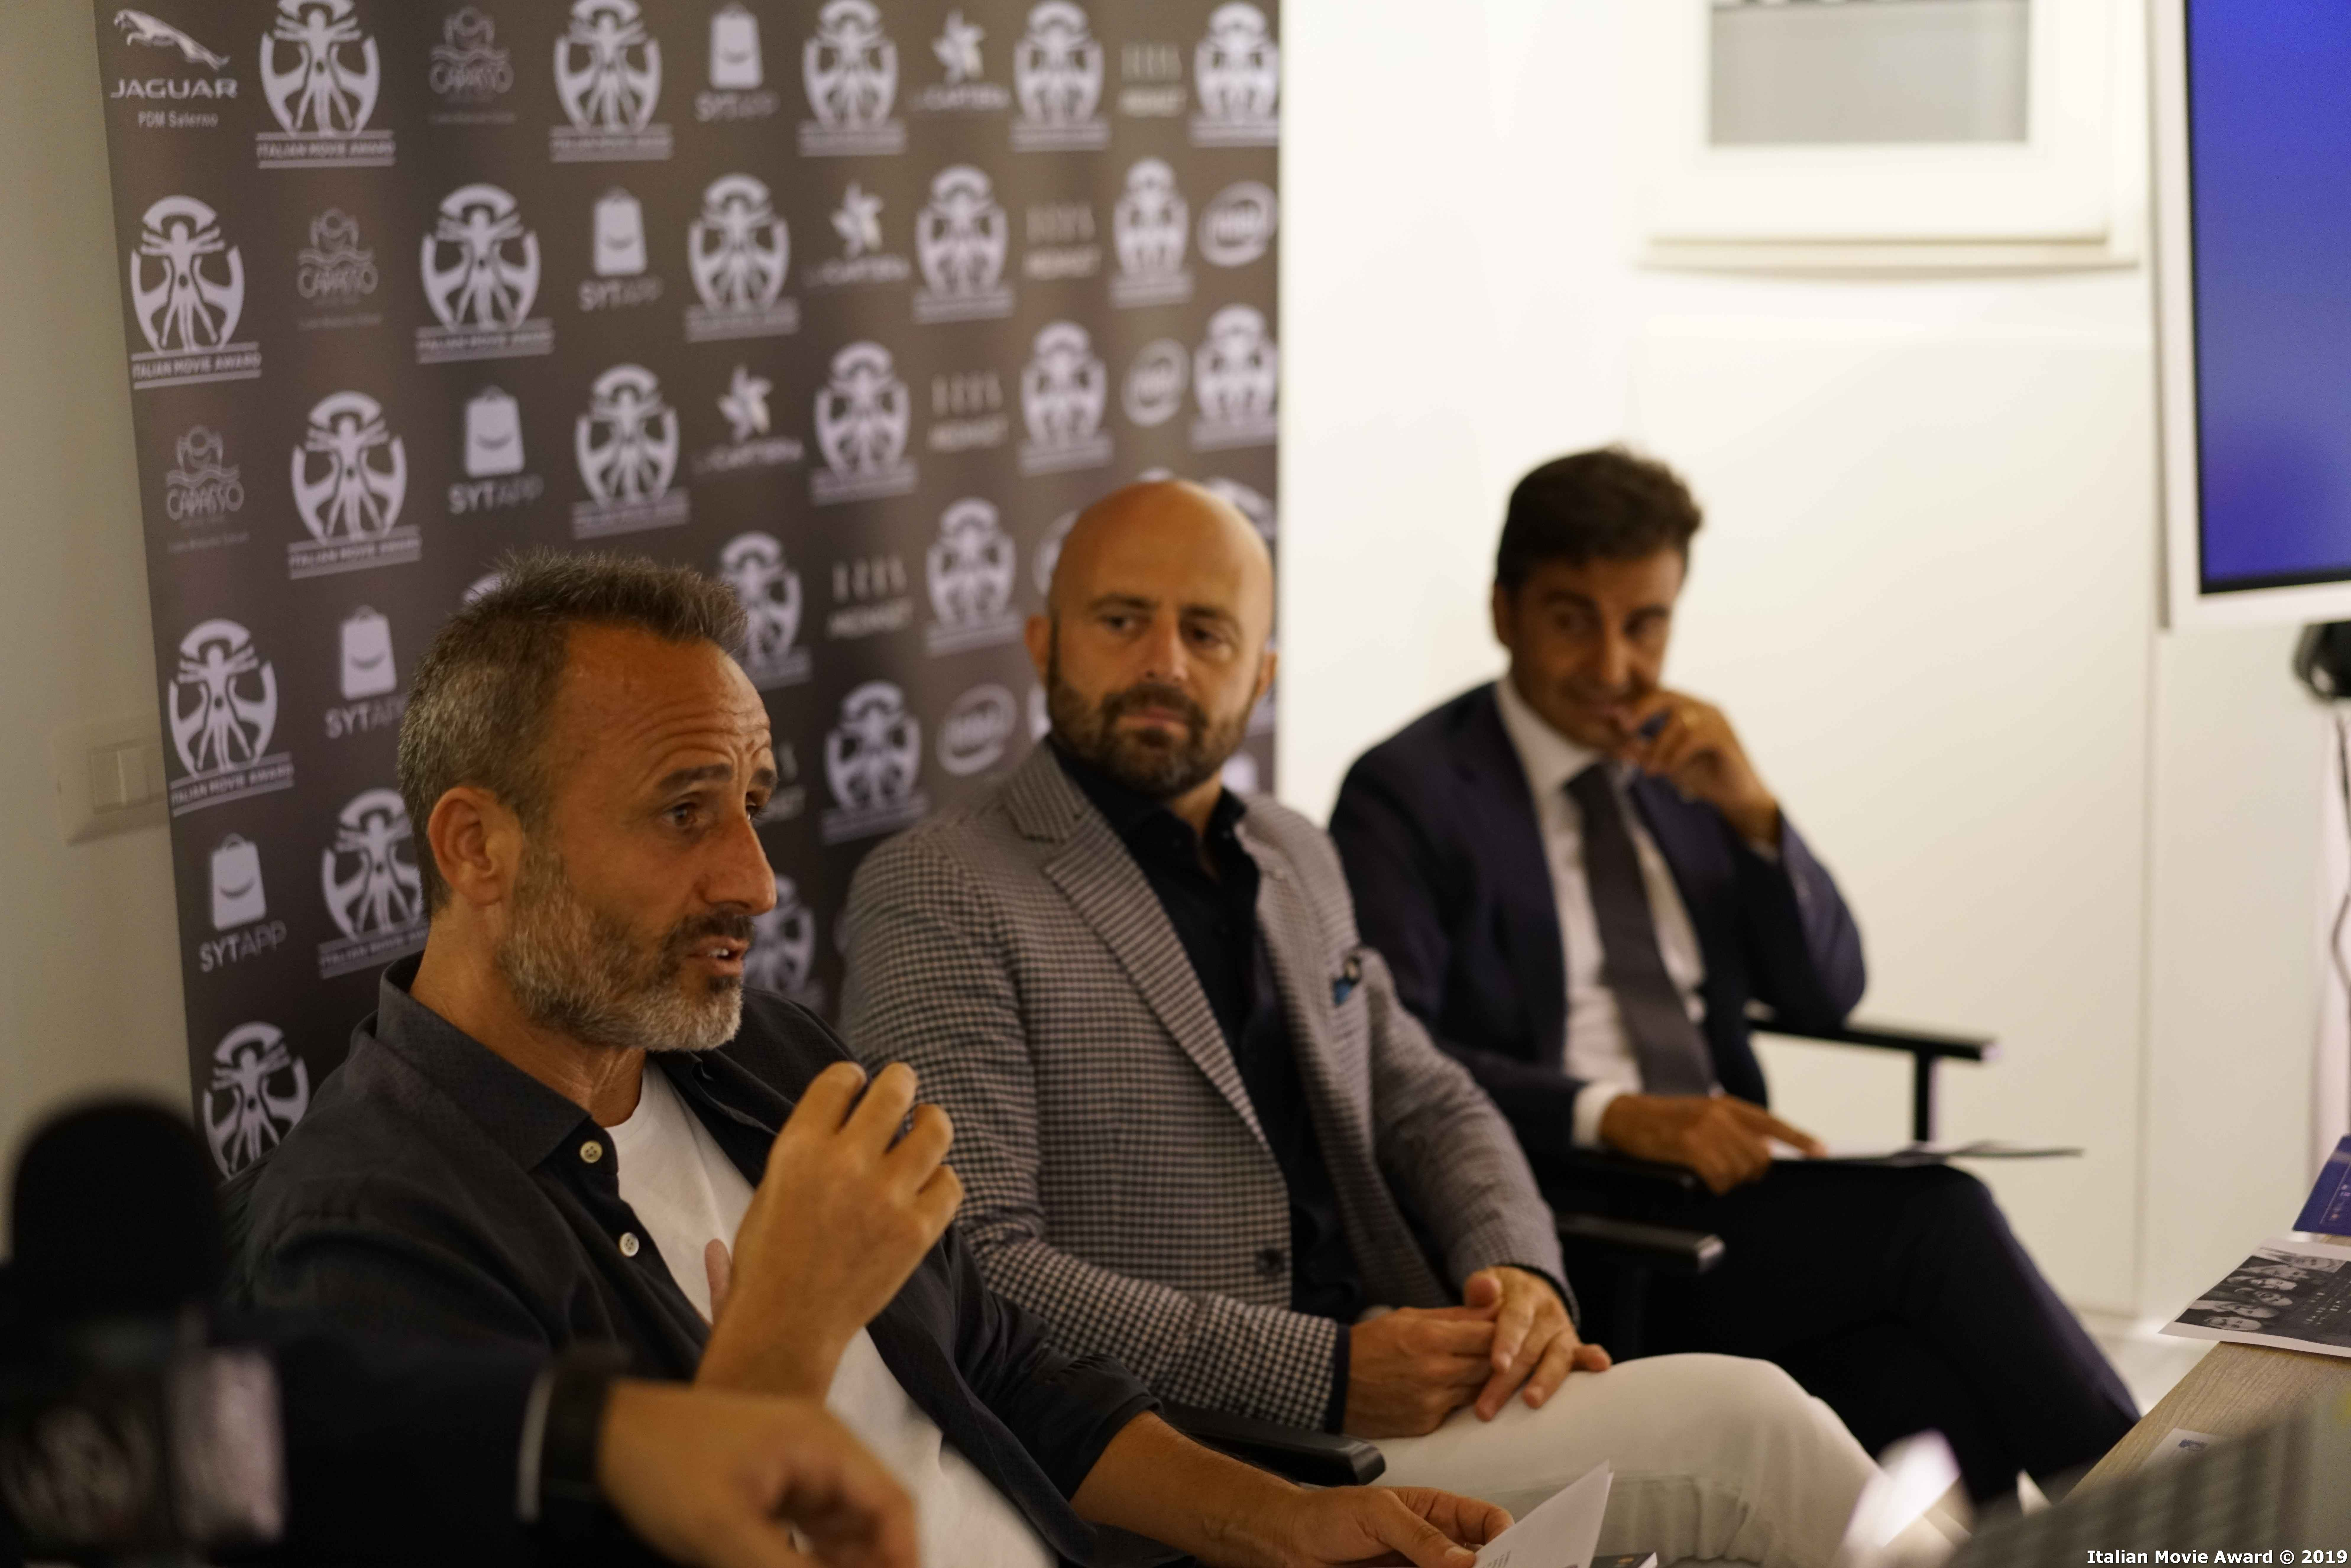 italian_movie_award_2019_conferenza_1_5